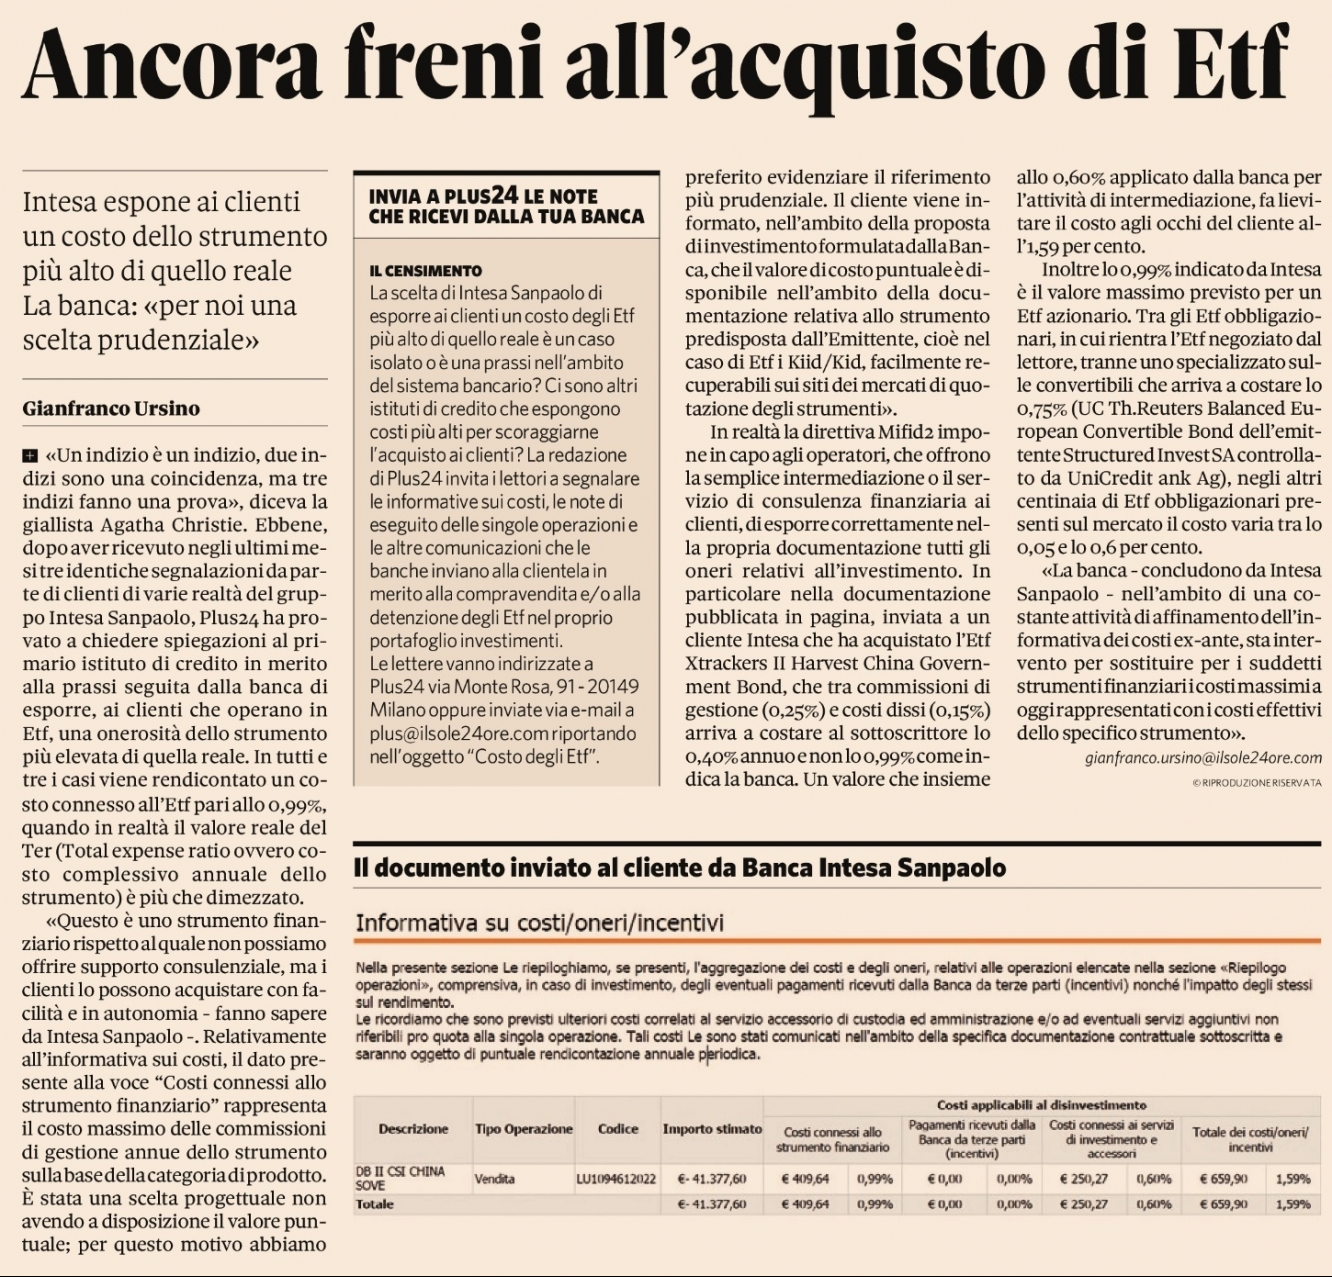 Etf, freni all'acquisto